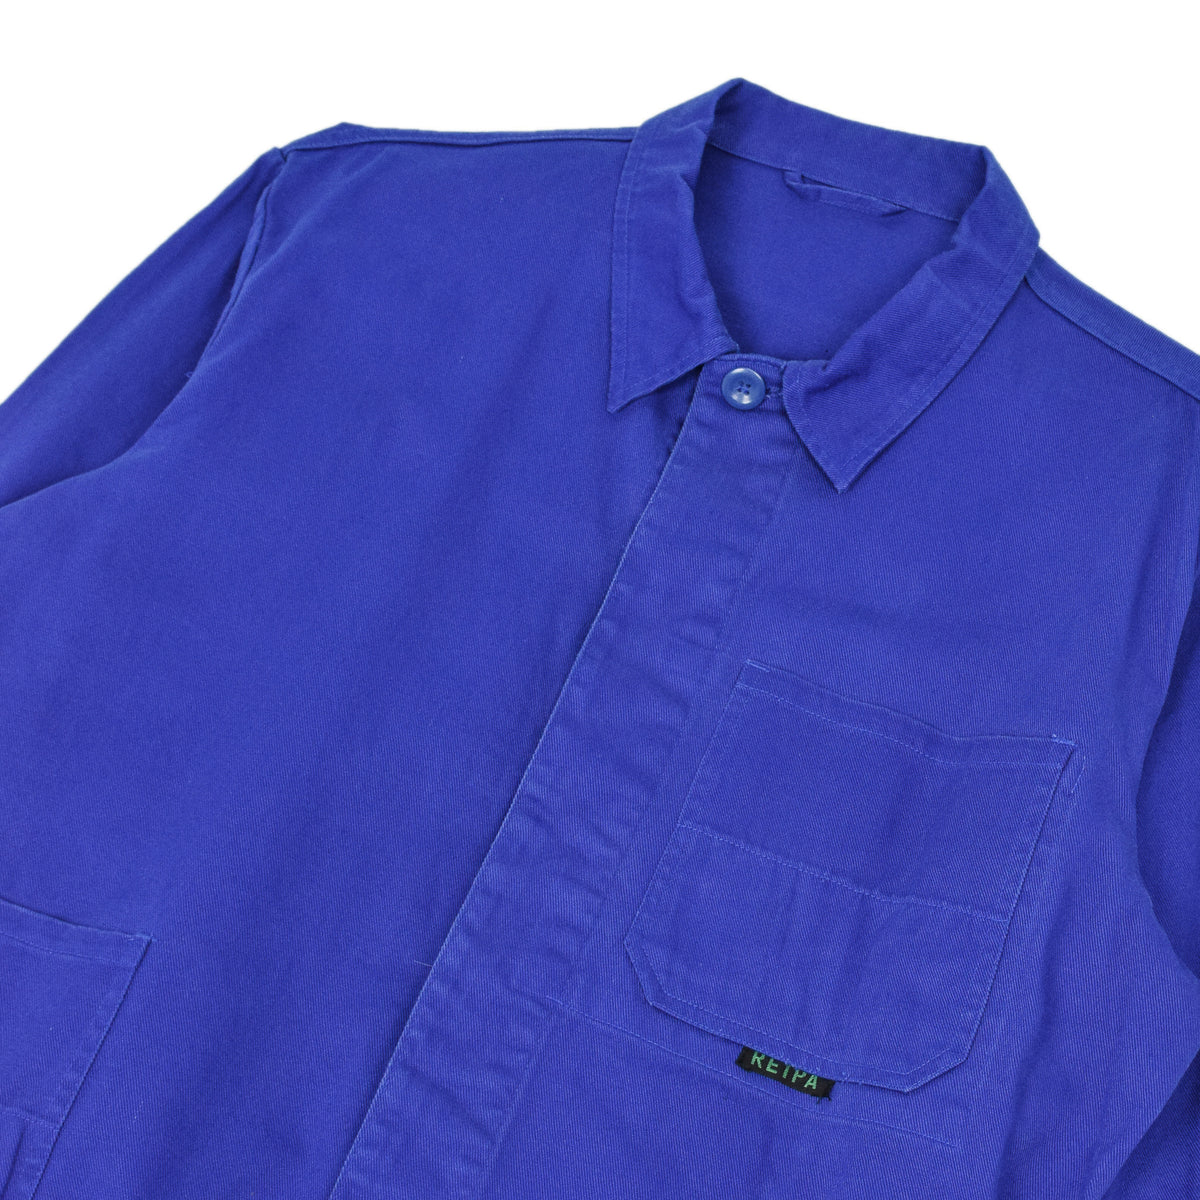 Vintage Bright Blue French Style Worker Sanforized Cotton Chore Jacket L details